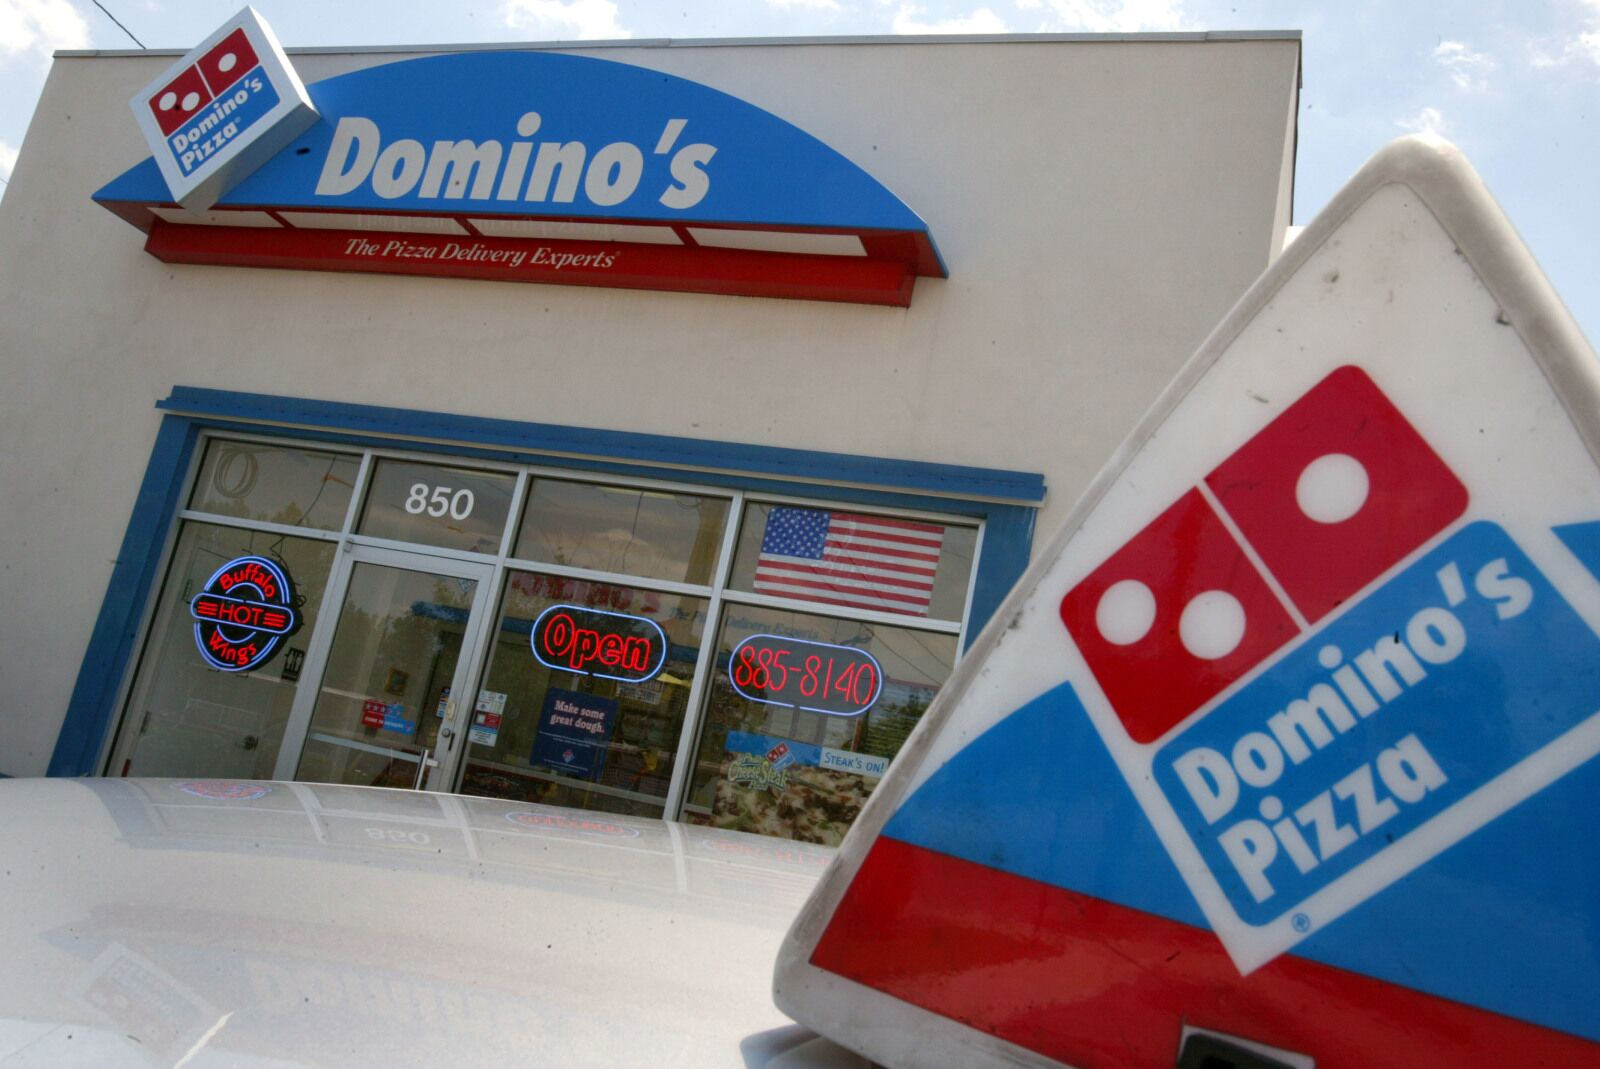 A Domino's employee goes viral for his Iron Throne of pizza boxes